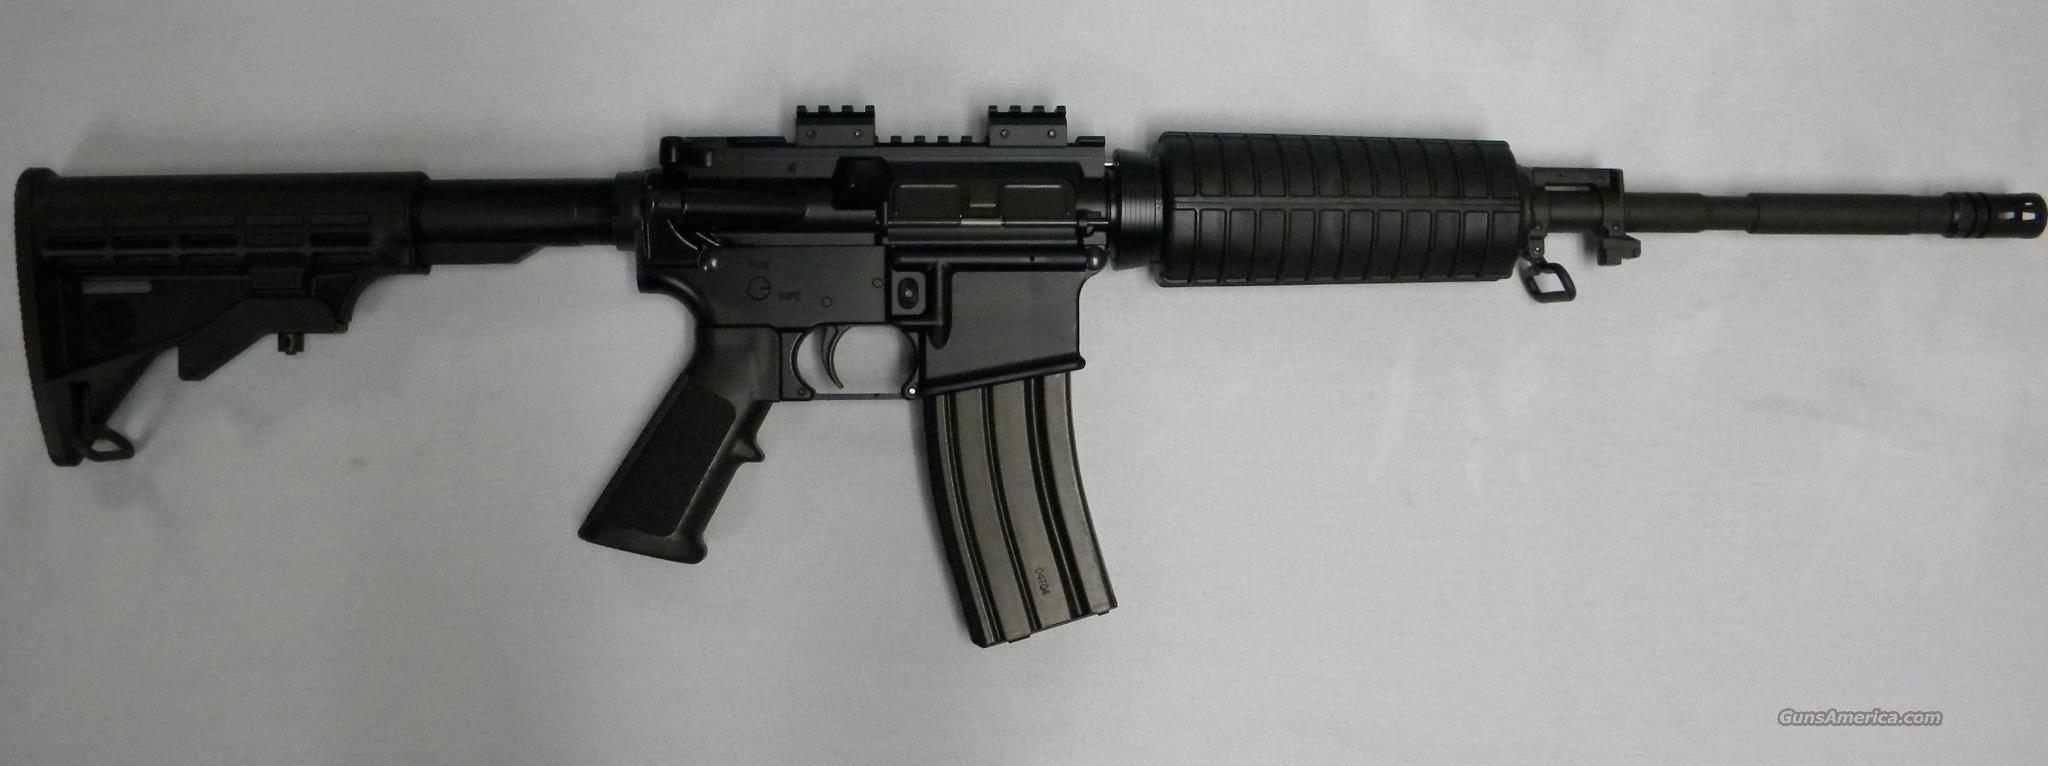 Bushmaster XM15-E2S, .223/5.56 AR-Style Rifle For Sale